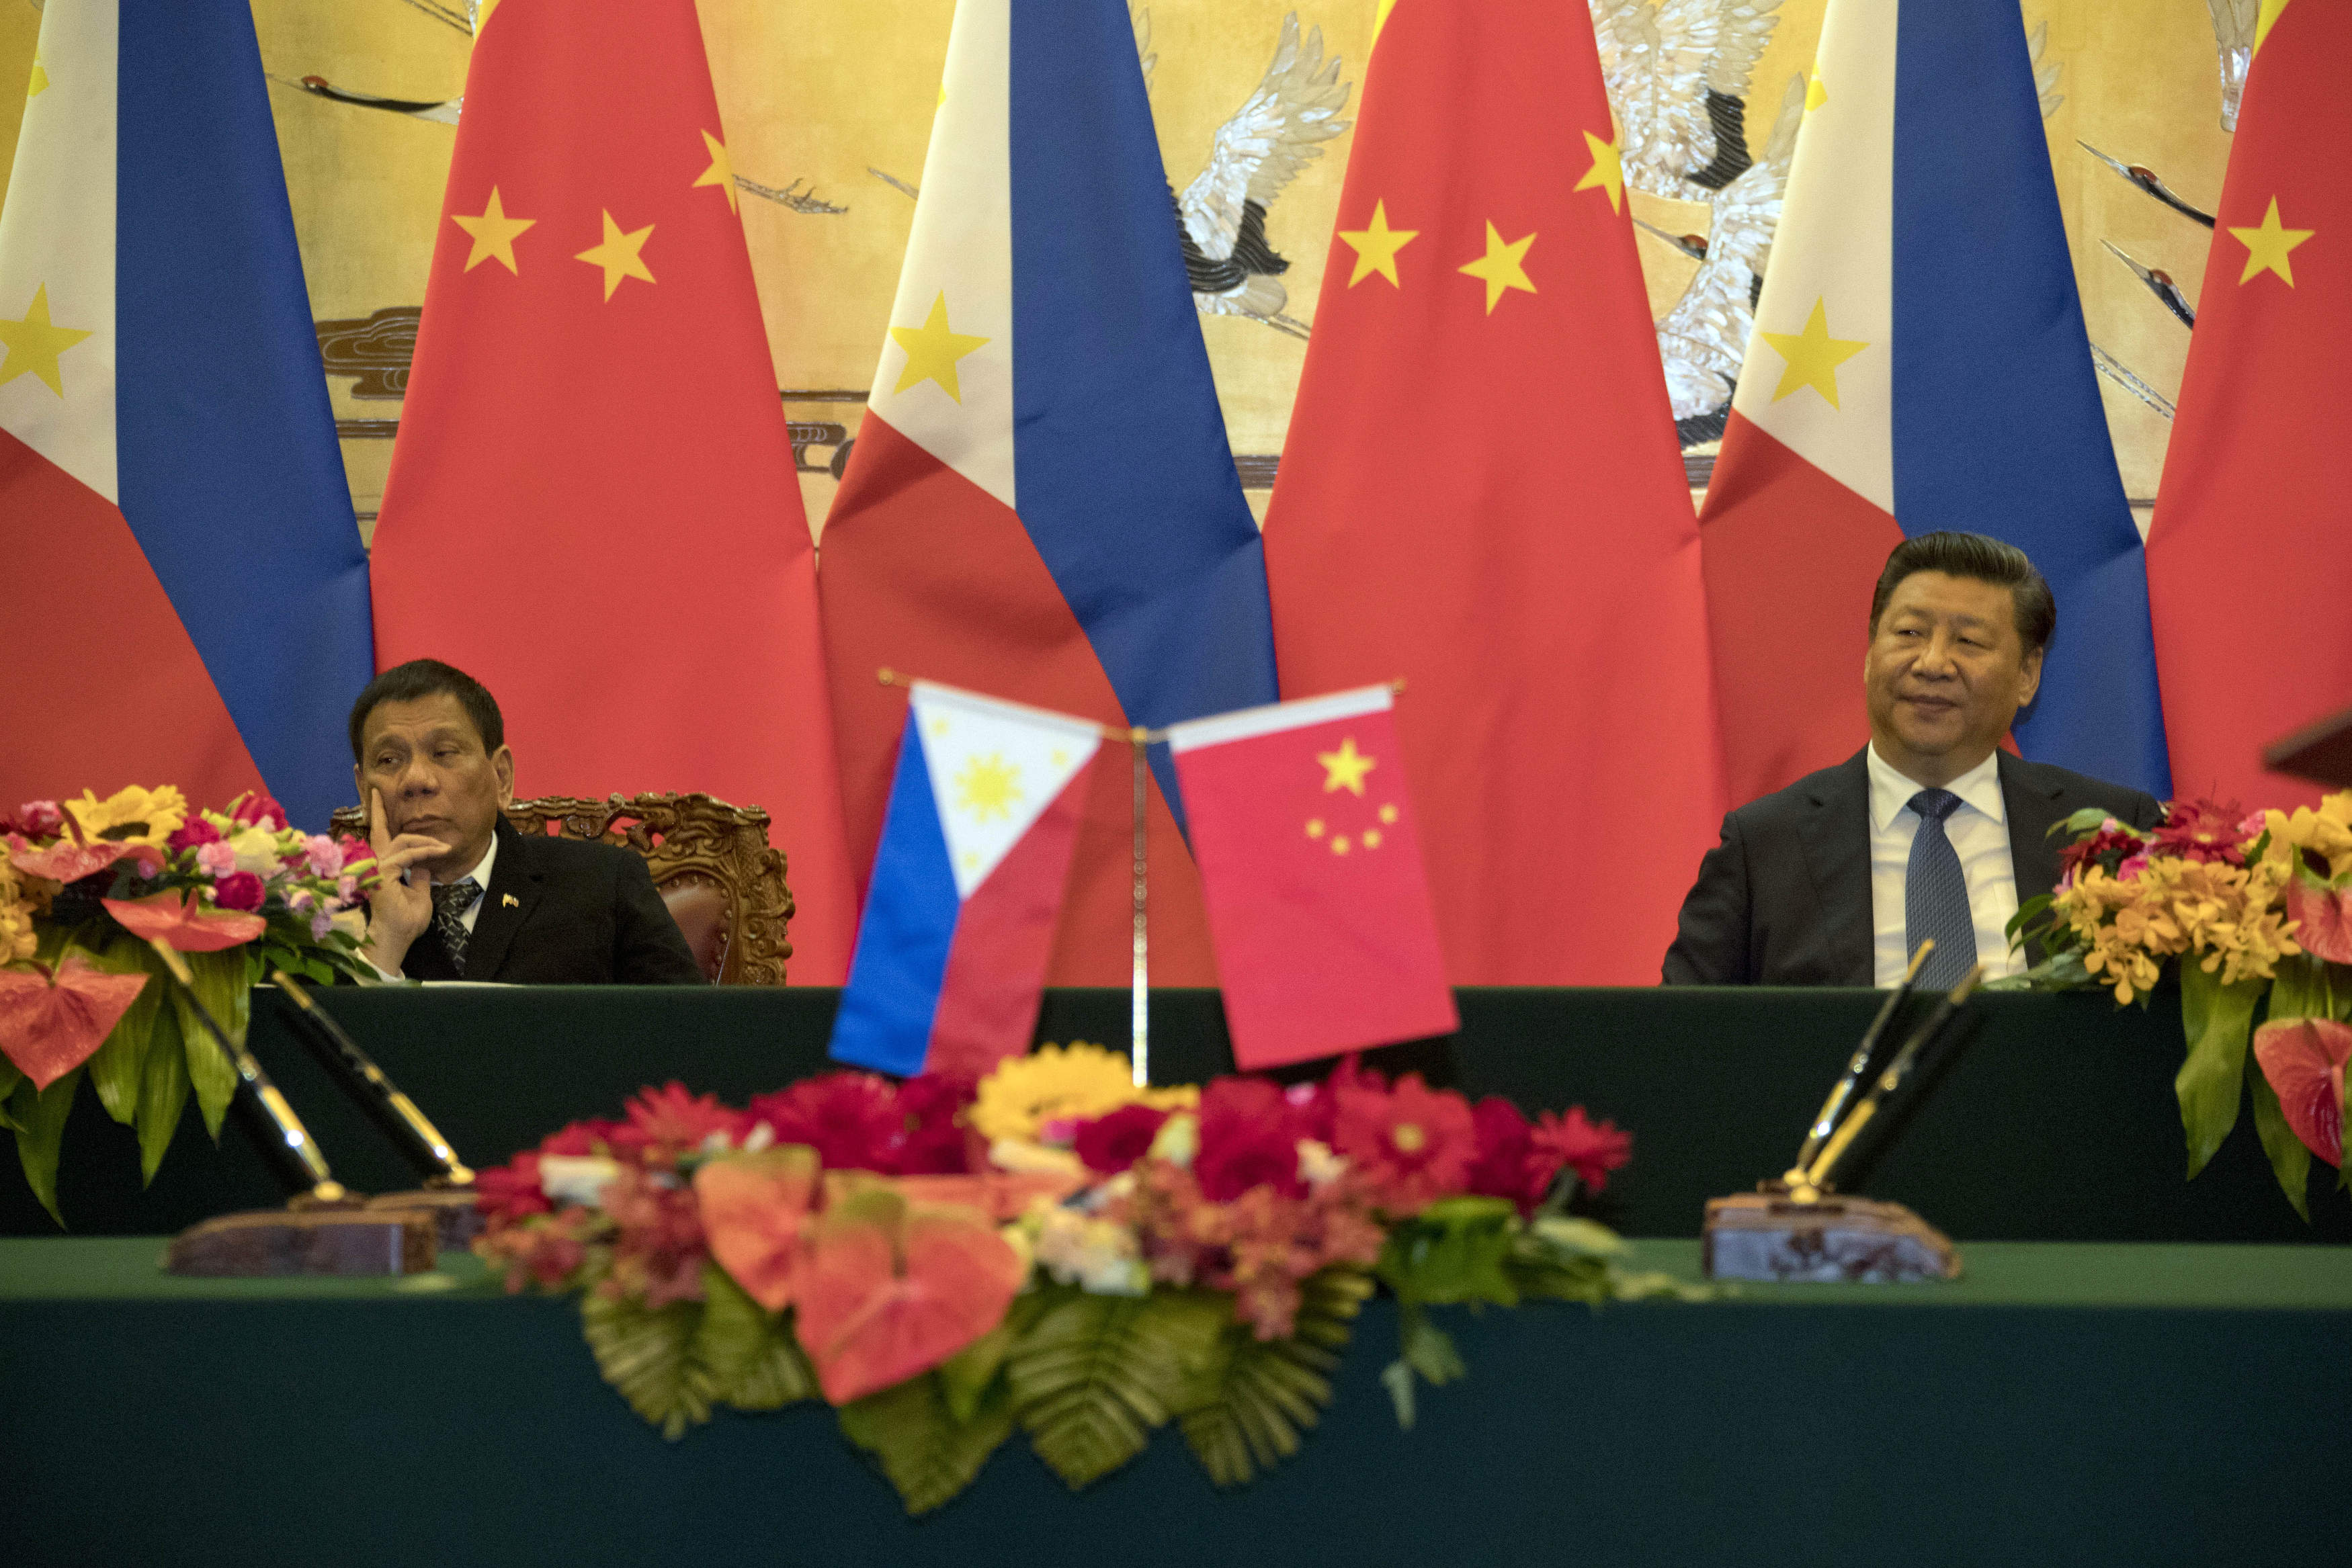 Philippine President Rodrigo Duterte, left and Chinese President Xi Jinping attend a signing ceremony on October 20, 2016 in Beijing, China.